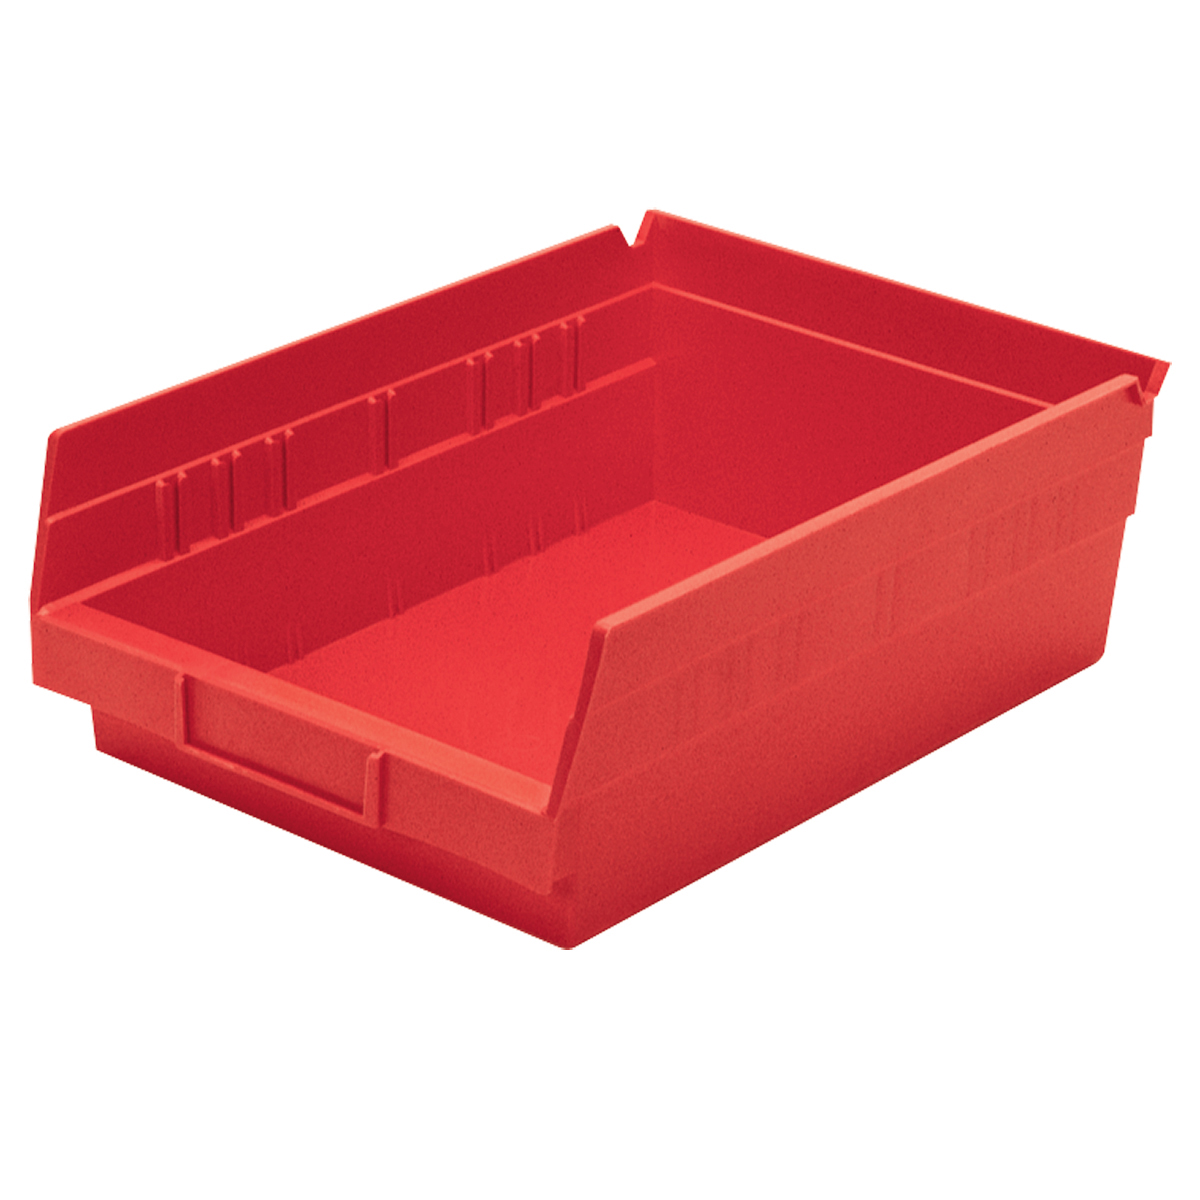 Shelf Bin 11-5/8 x 8-3/8 x 4, Red (30150RED).  This item sold in carton quantities of 12.